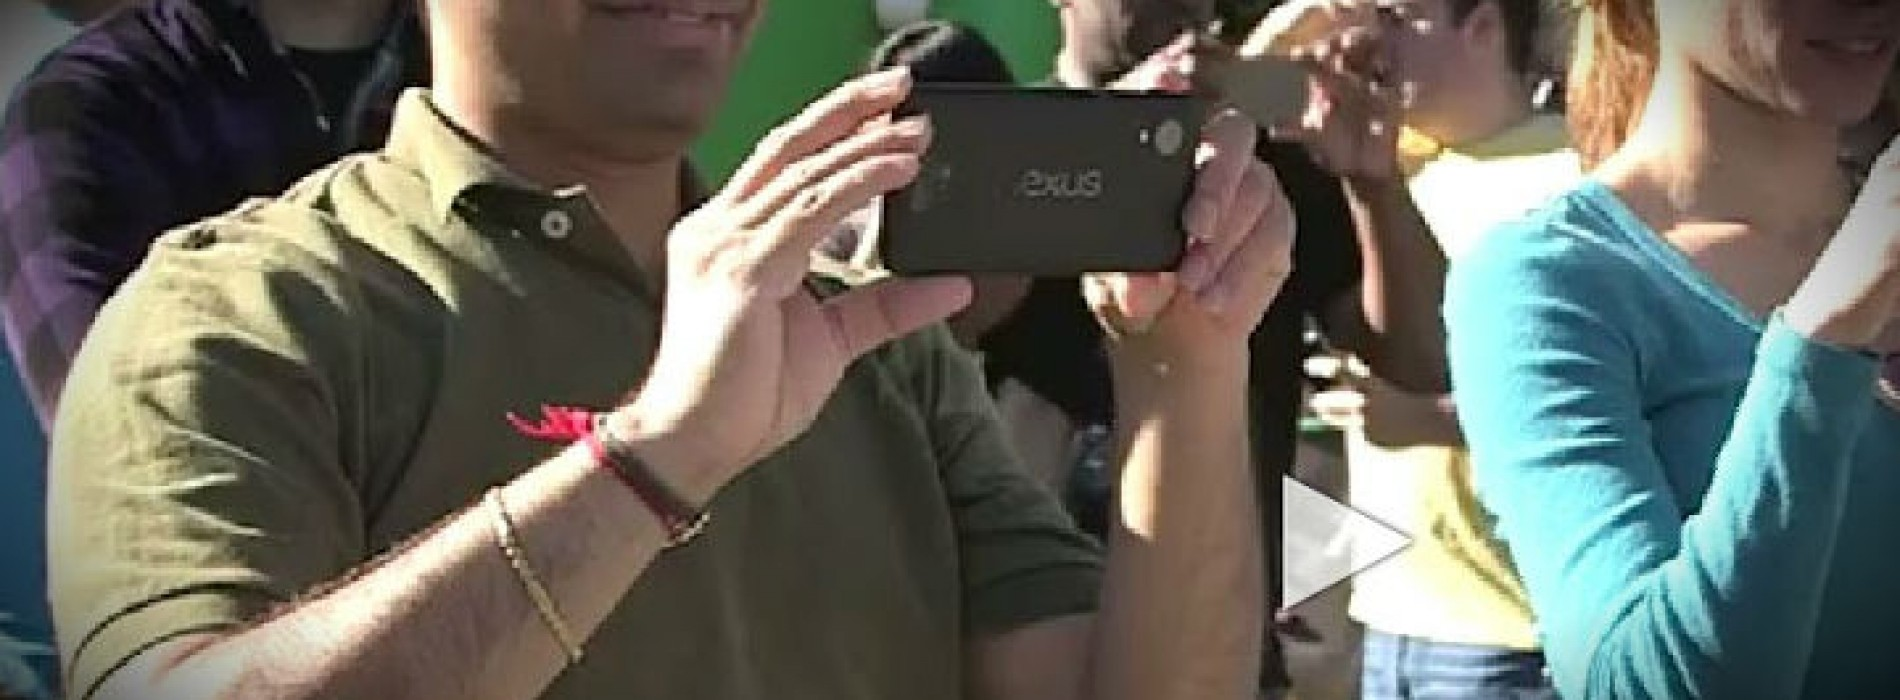 Did a new Nexus device sneak into a Google KitKat video?